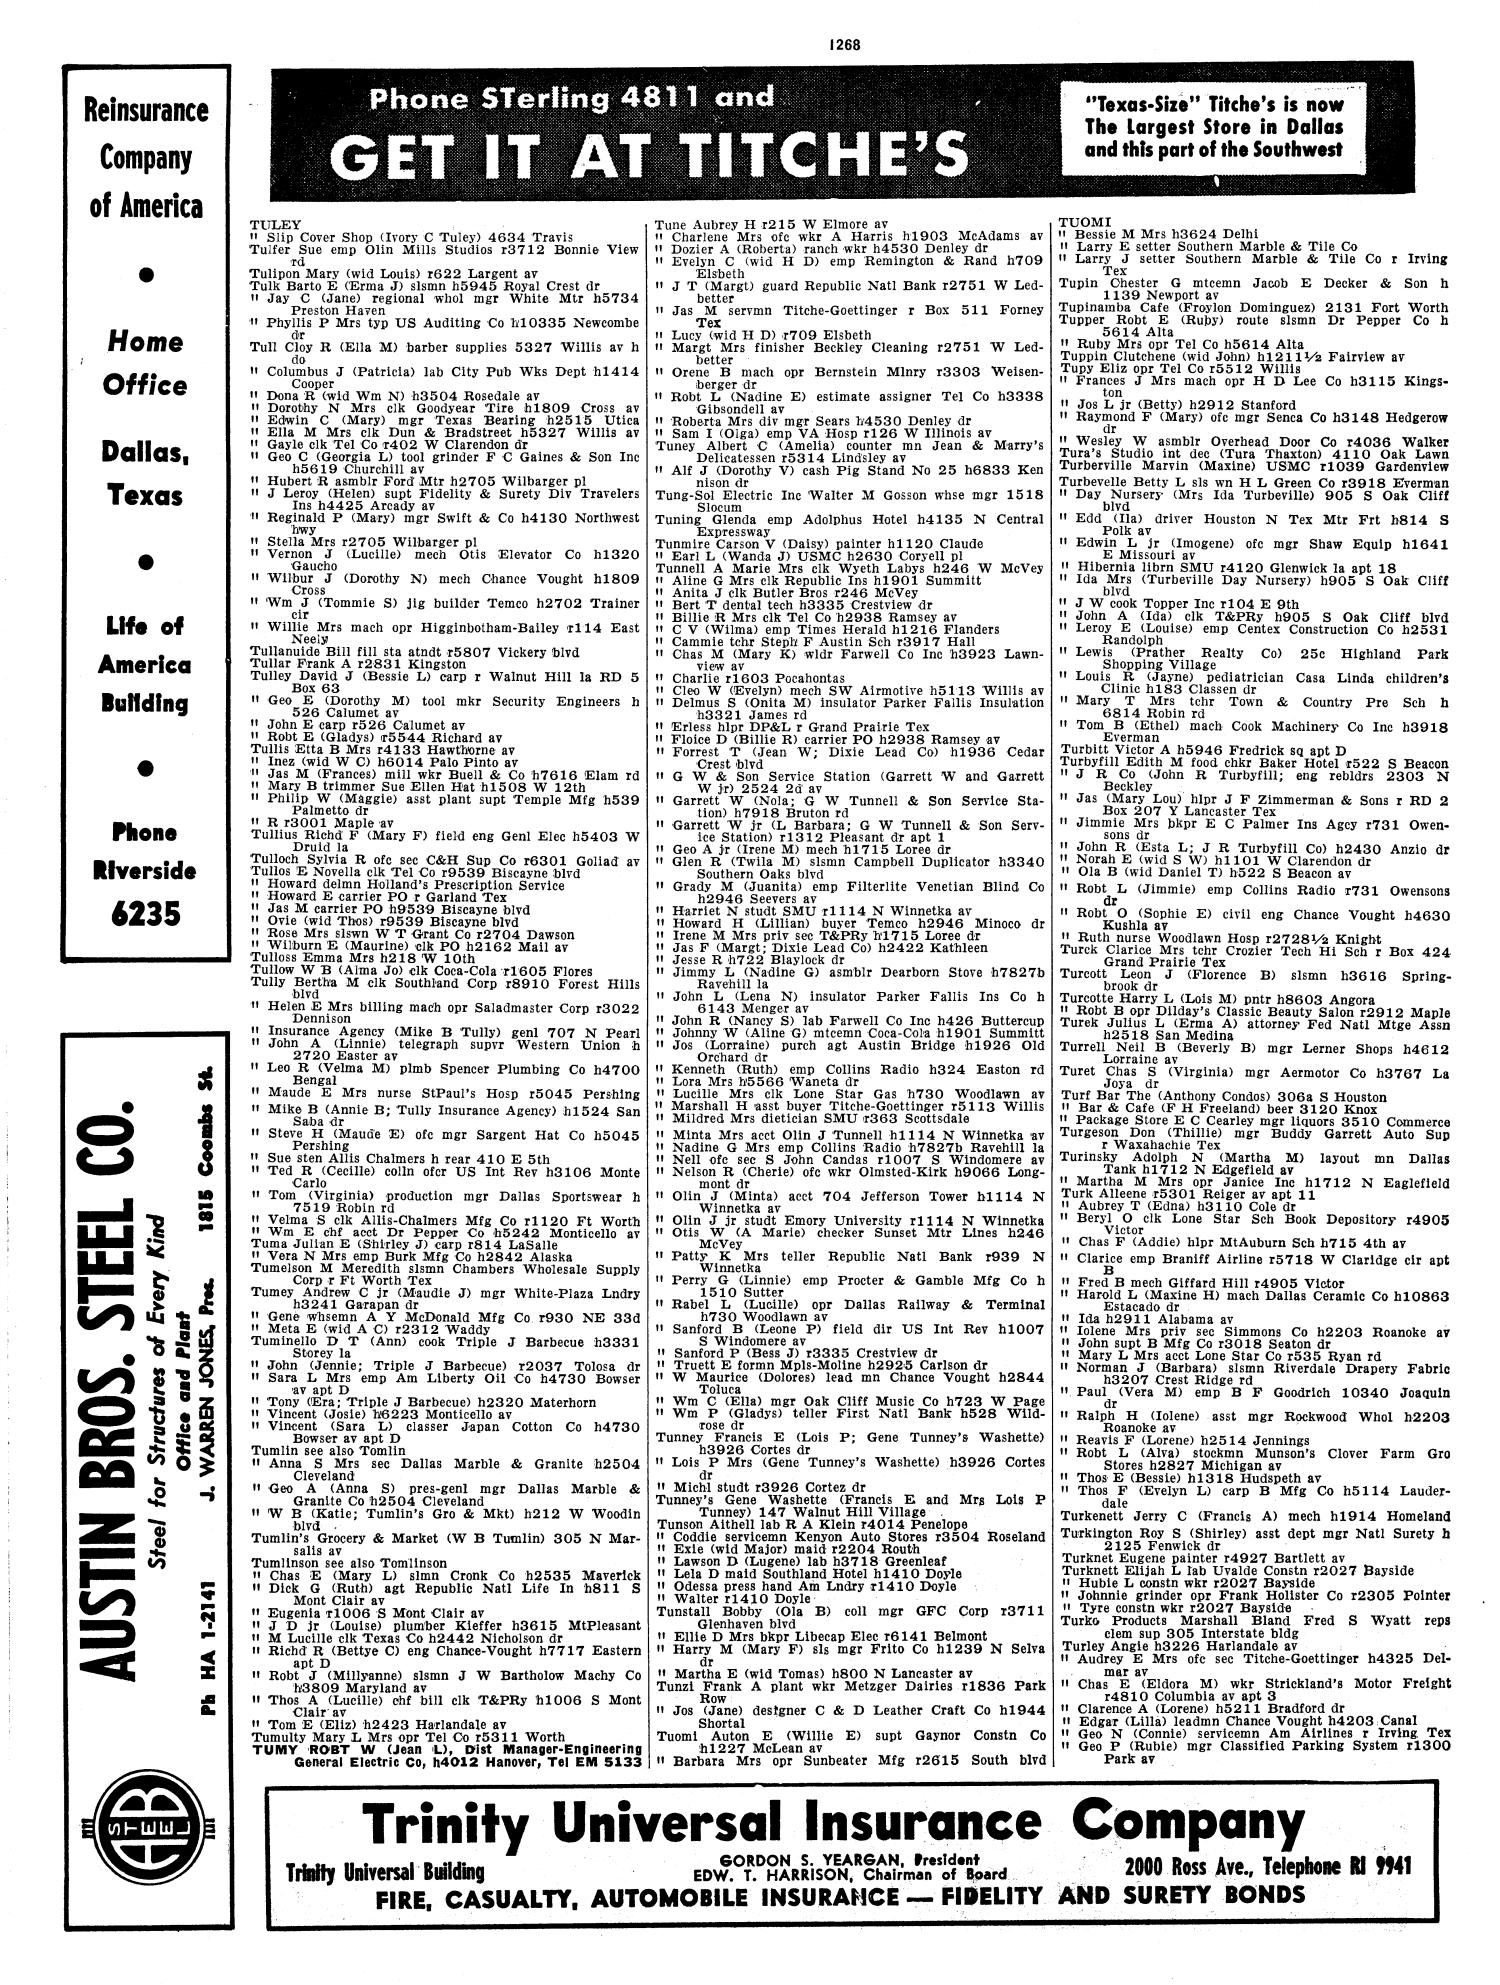 Dallas City Directory, 1956 - Page 1,268 - The Portal to Texas History